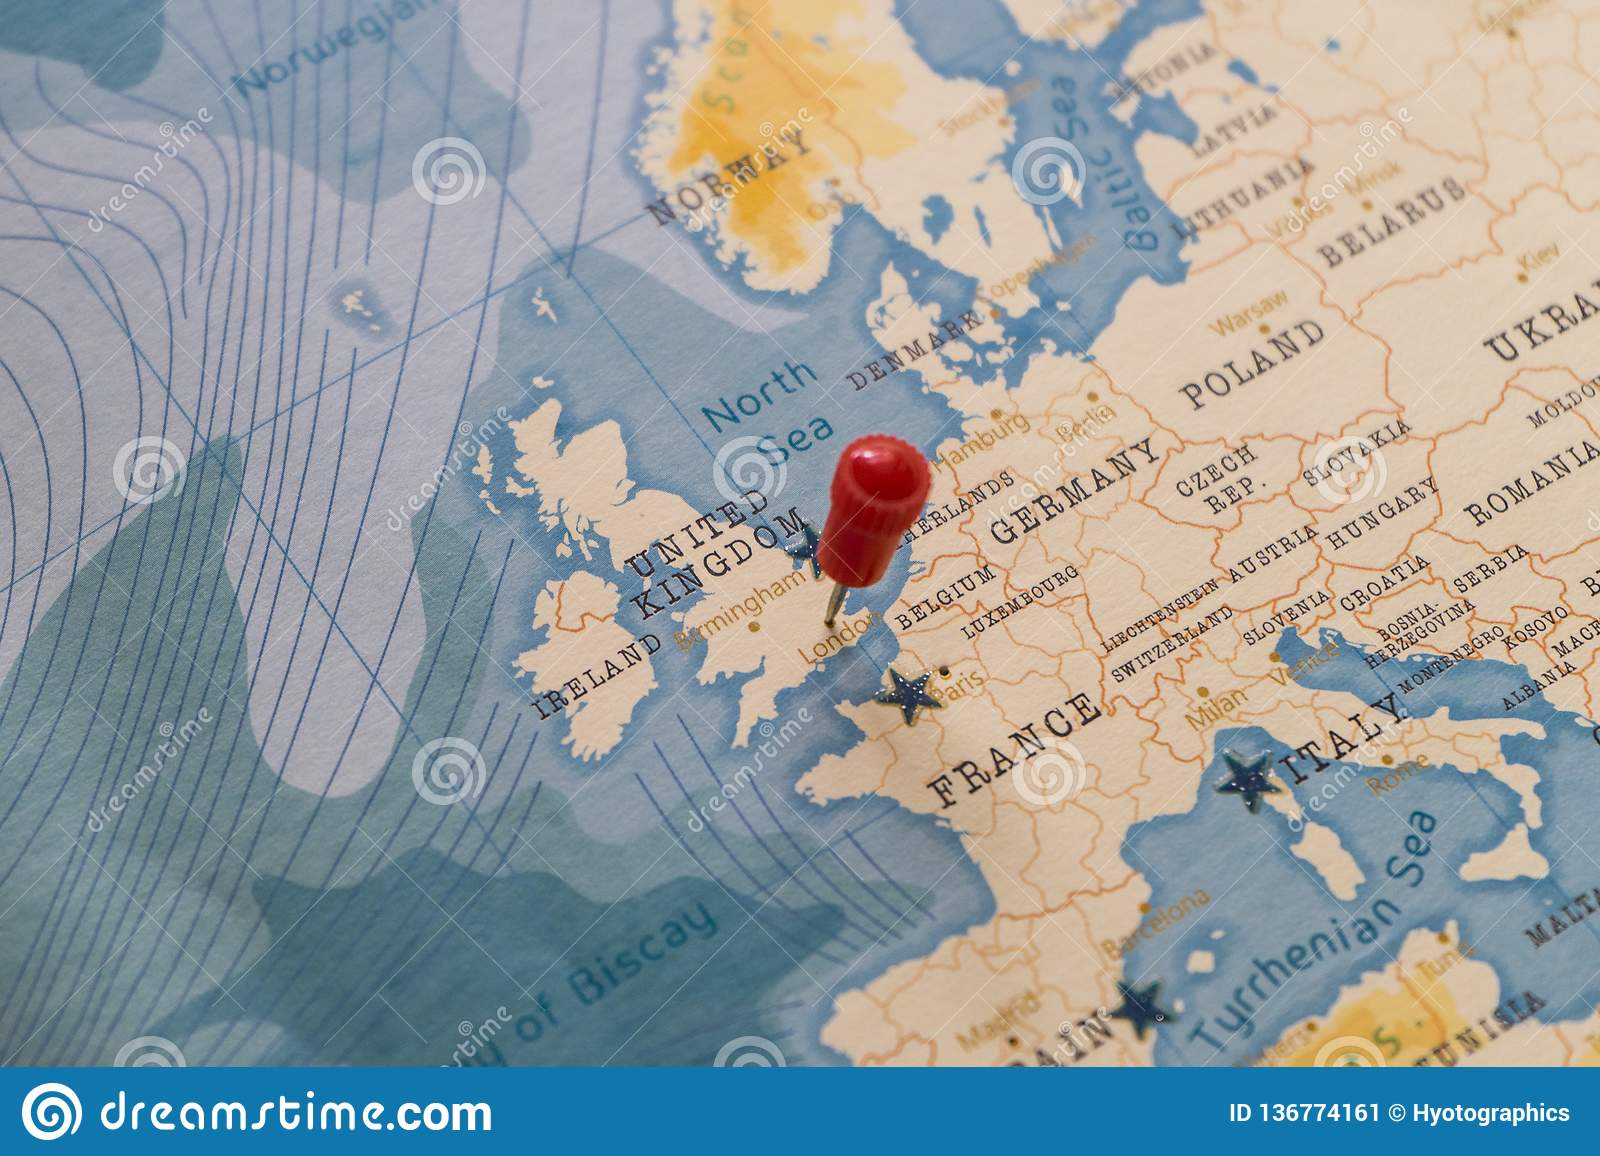 A Pin On London, England In The World Map Stock Image ...